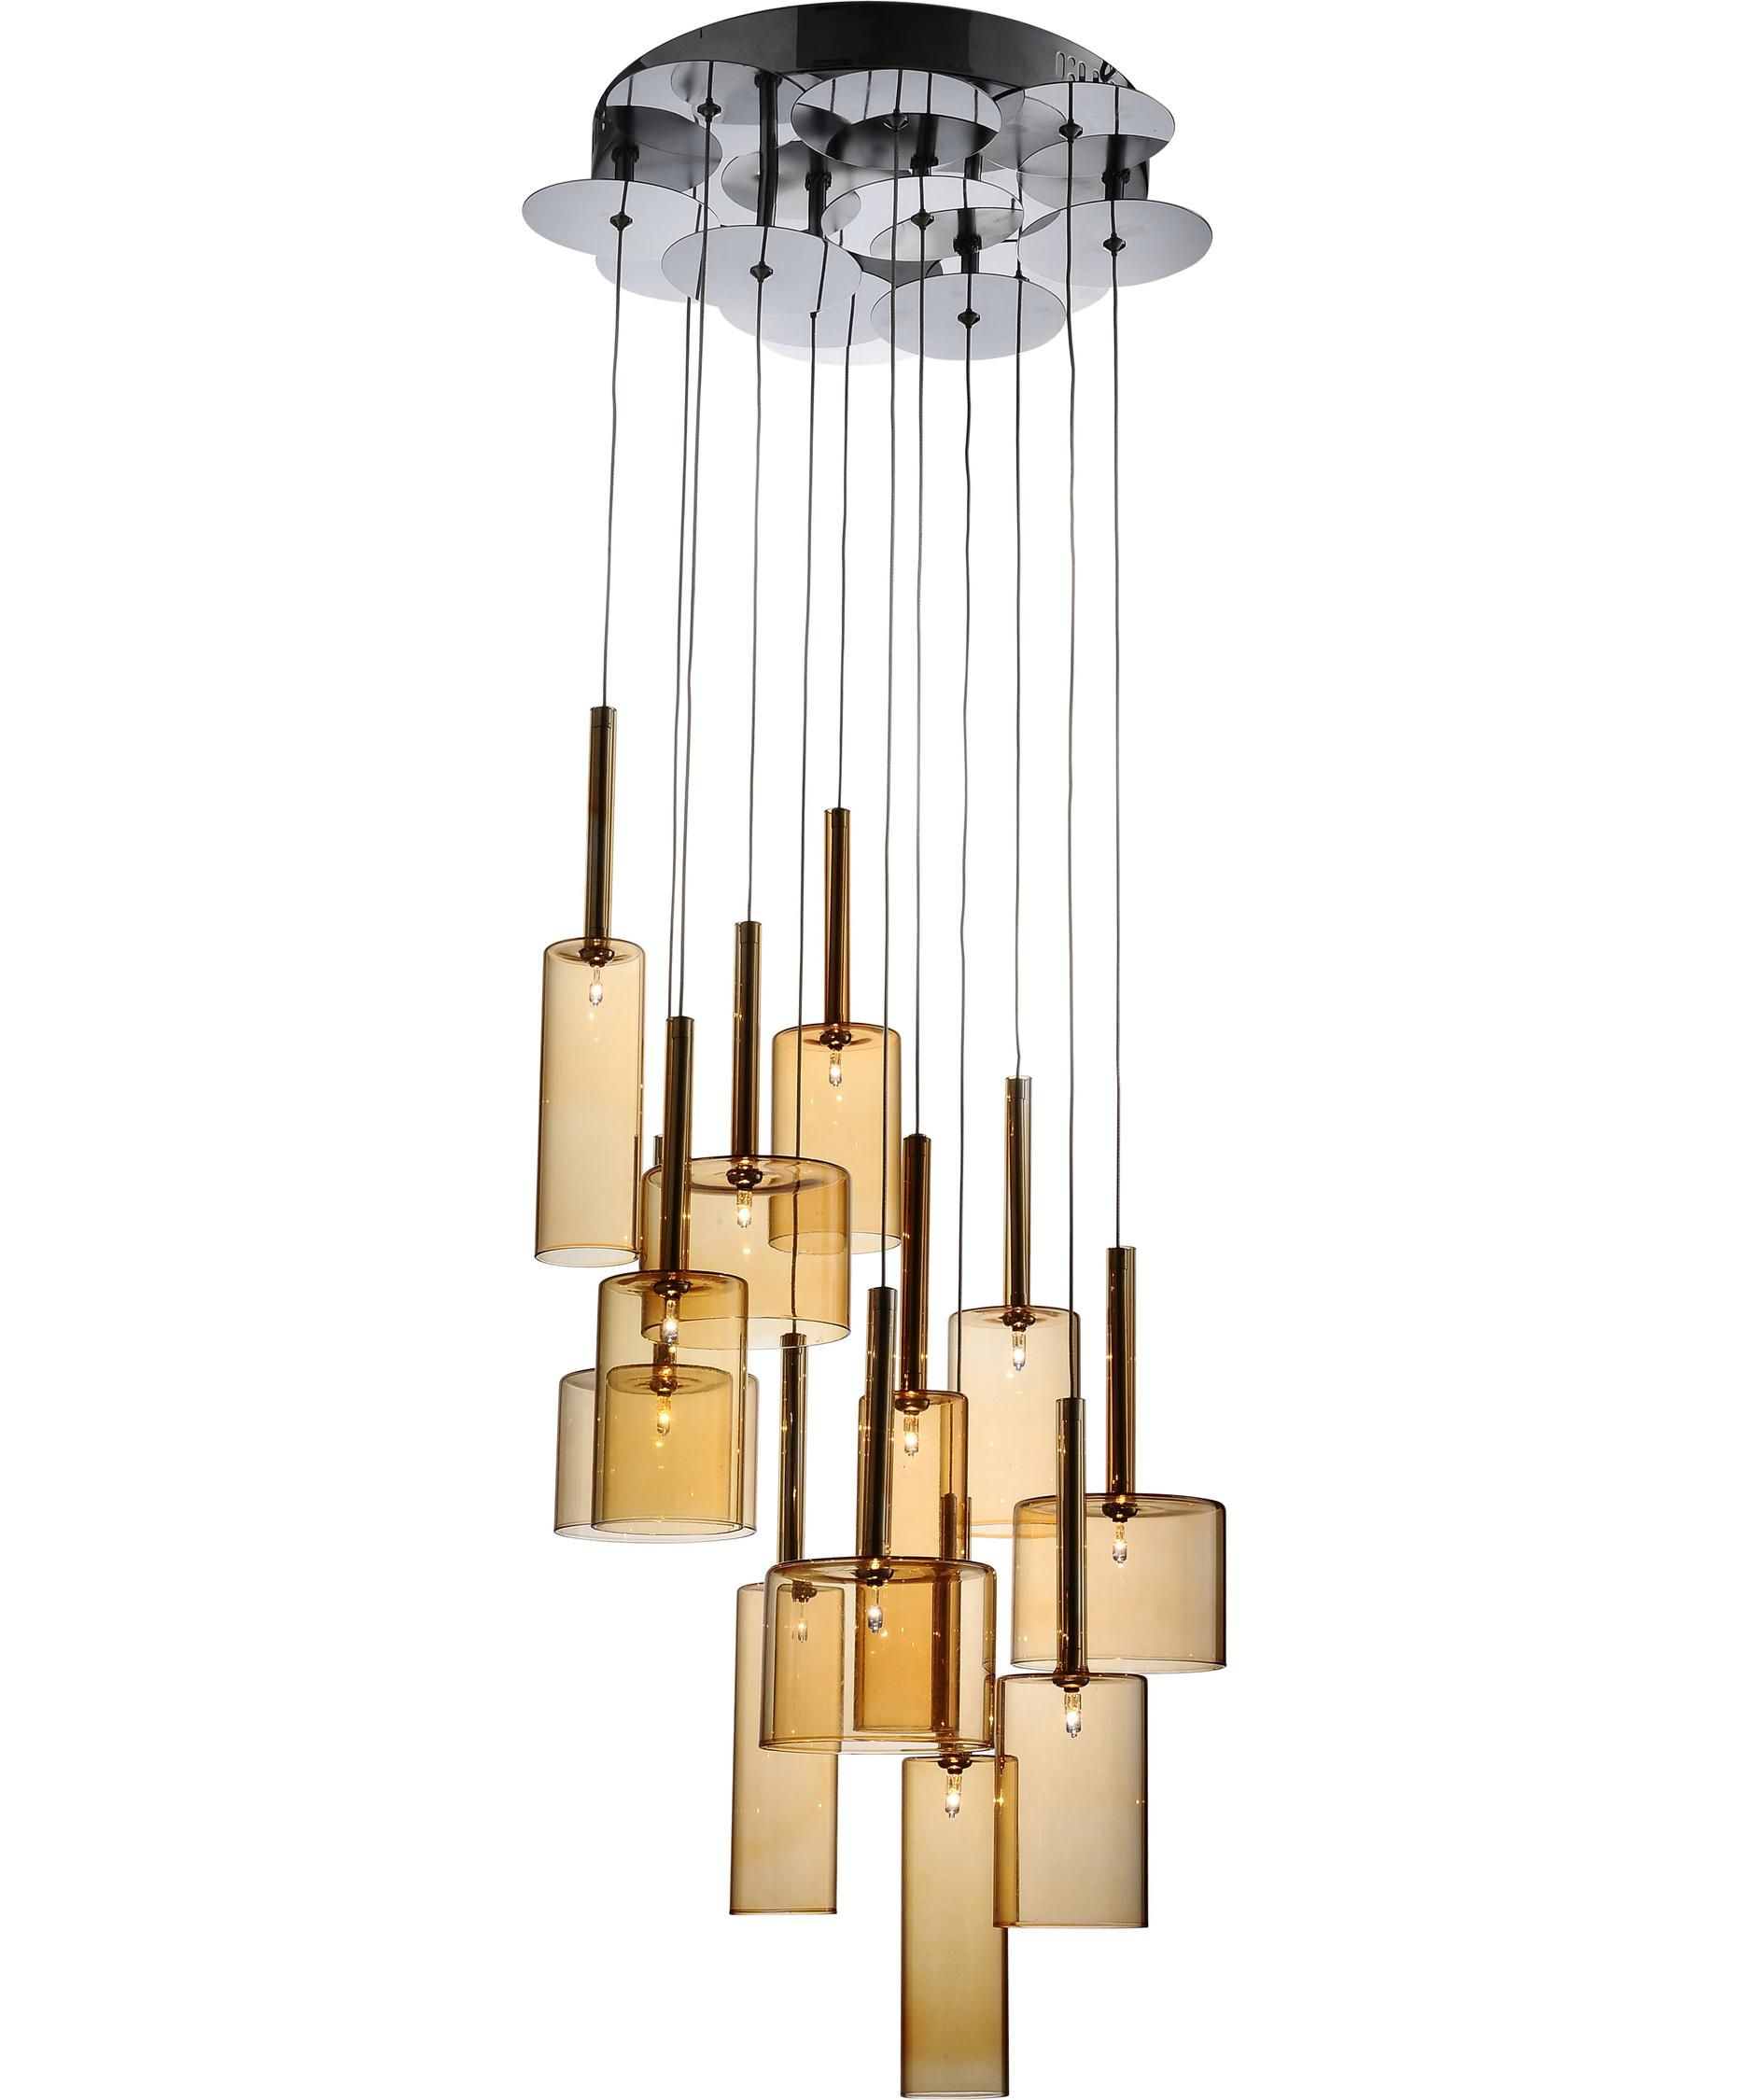 multiple pendant lighting fixtures. Artcraft AC1342 Berlinetta 18 Inch Multi Pendant Light | Capitol Lighting 1-800lighting.com Multiple Fixtures E